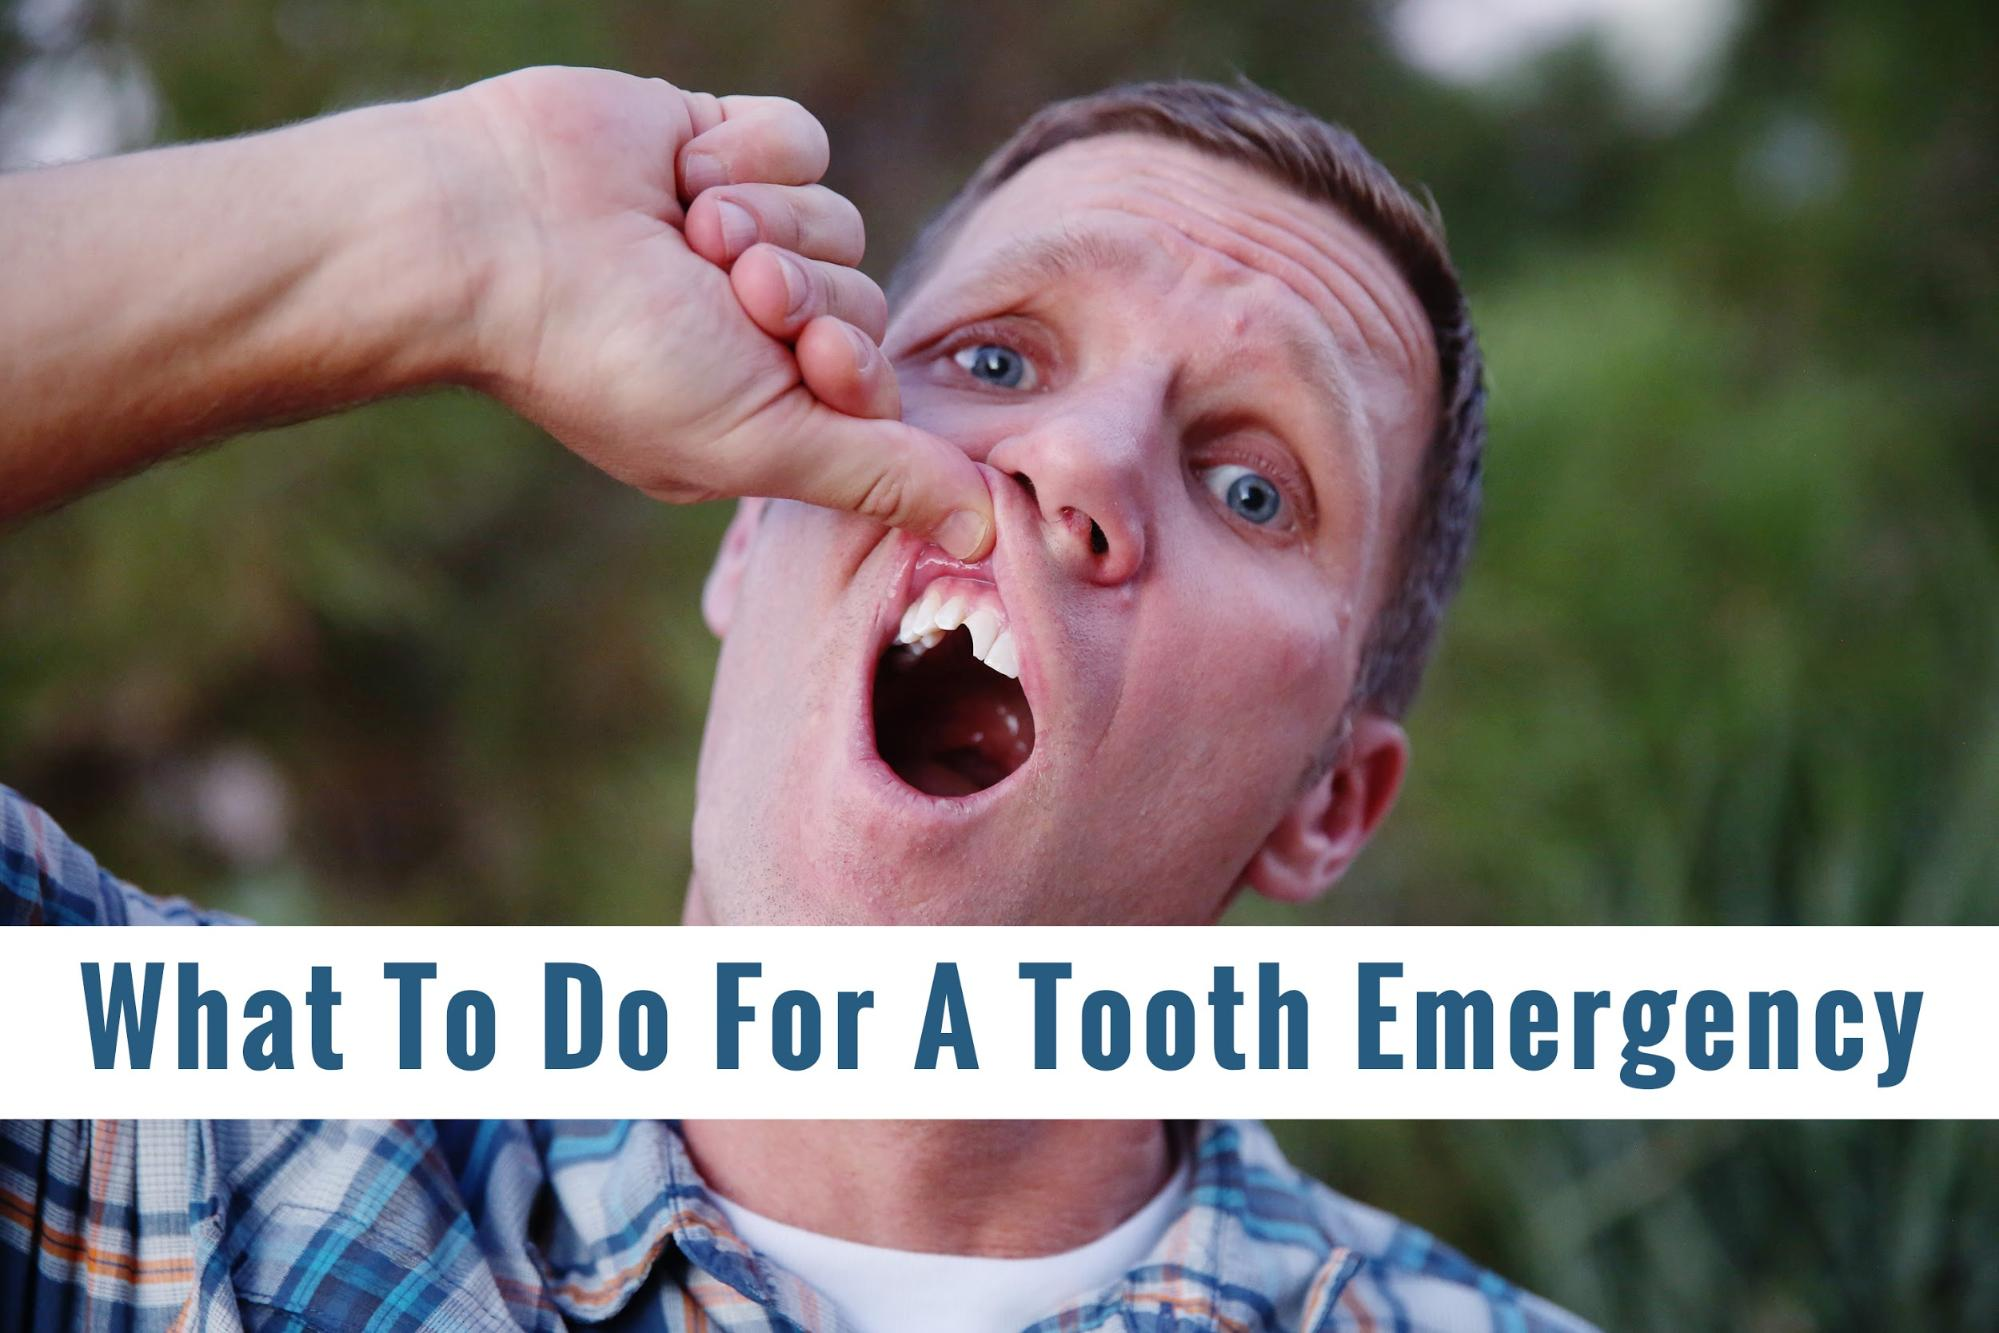 What To Do For A Tooth Emergency